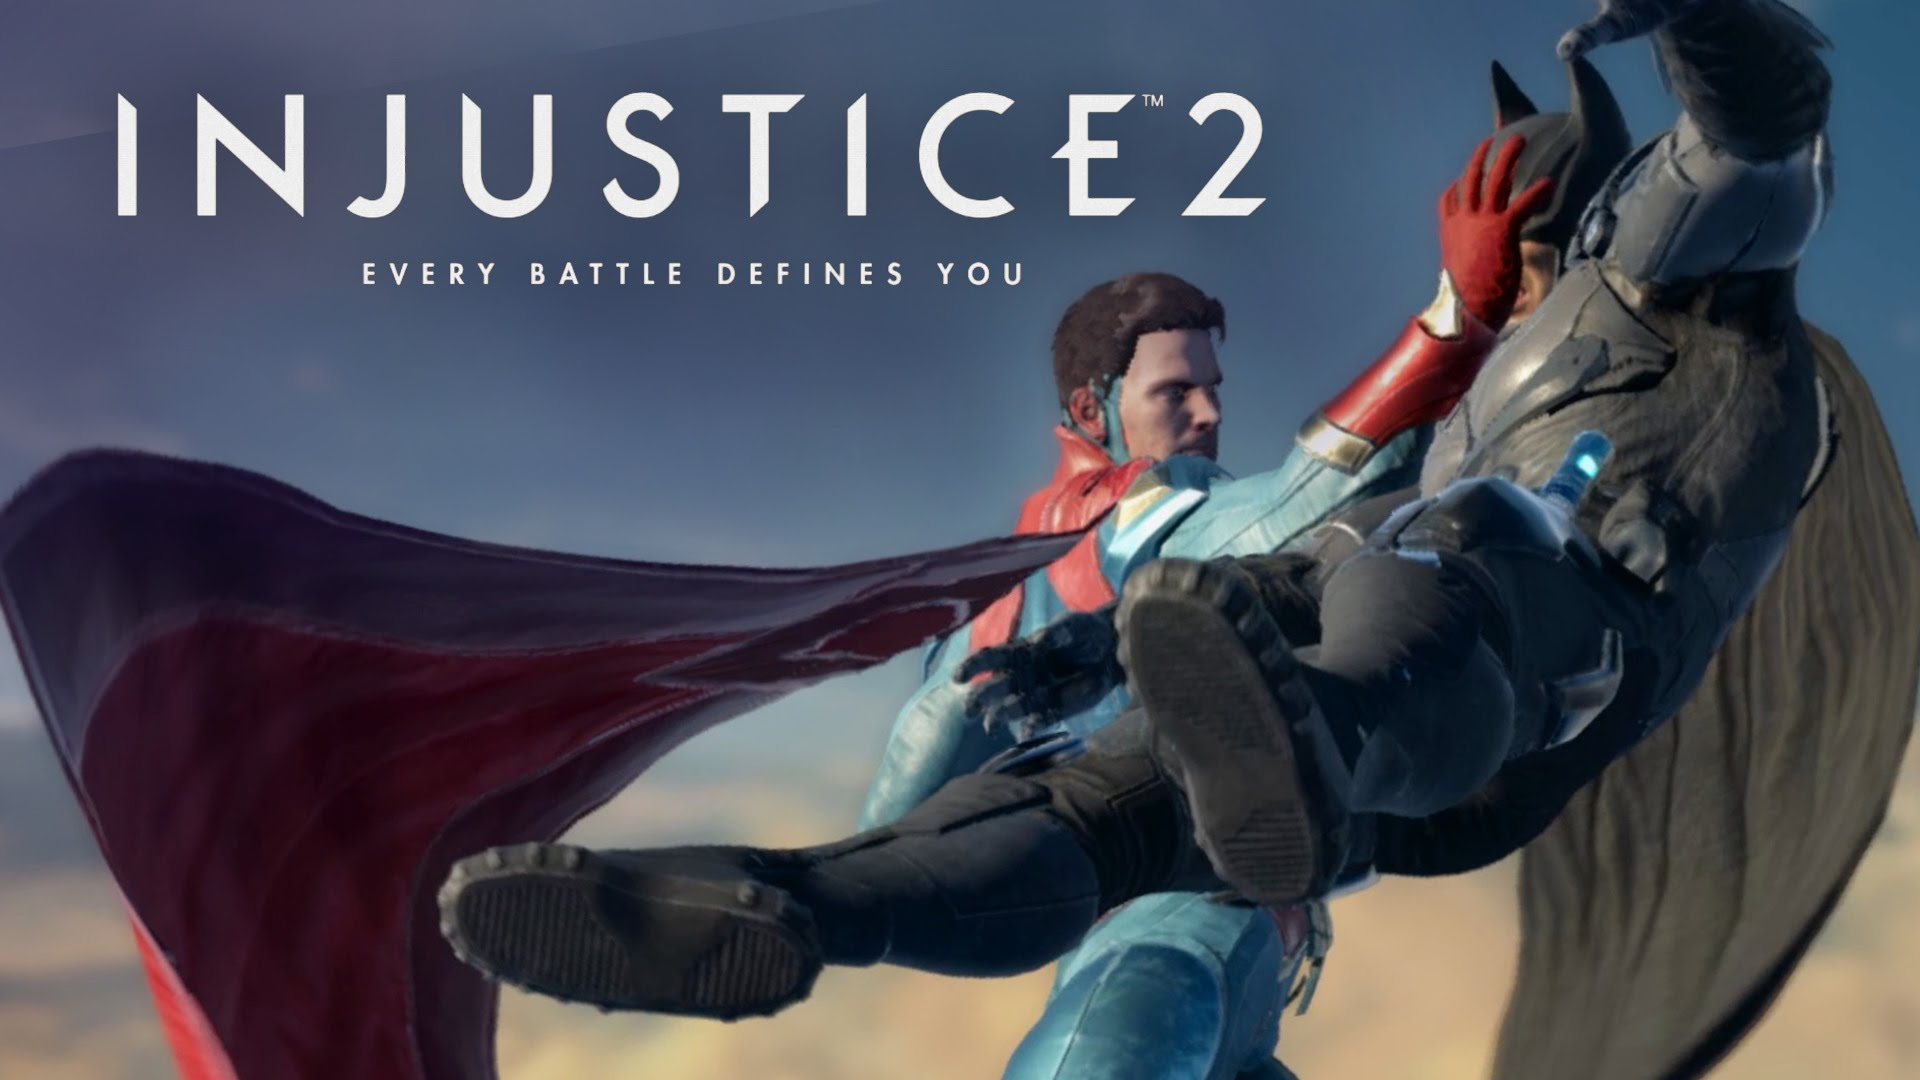 injustice 2 thumb